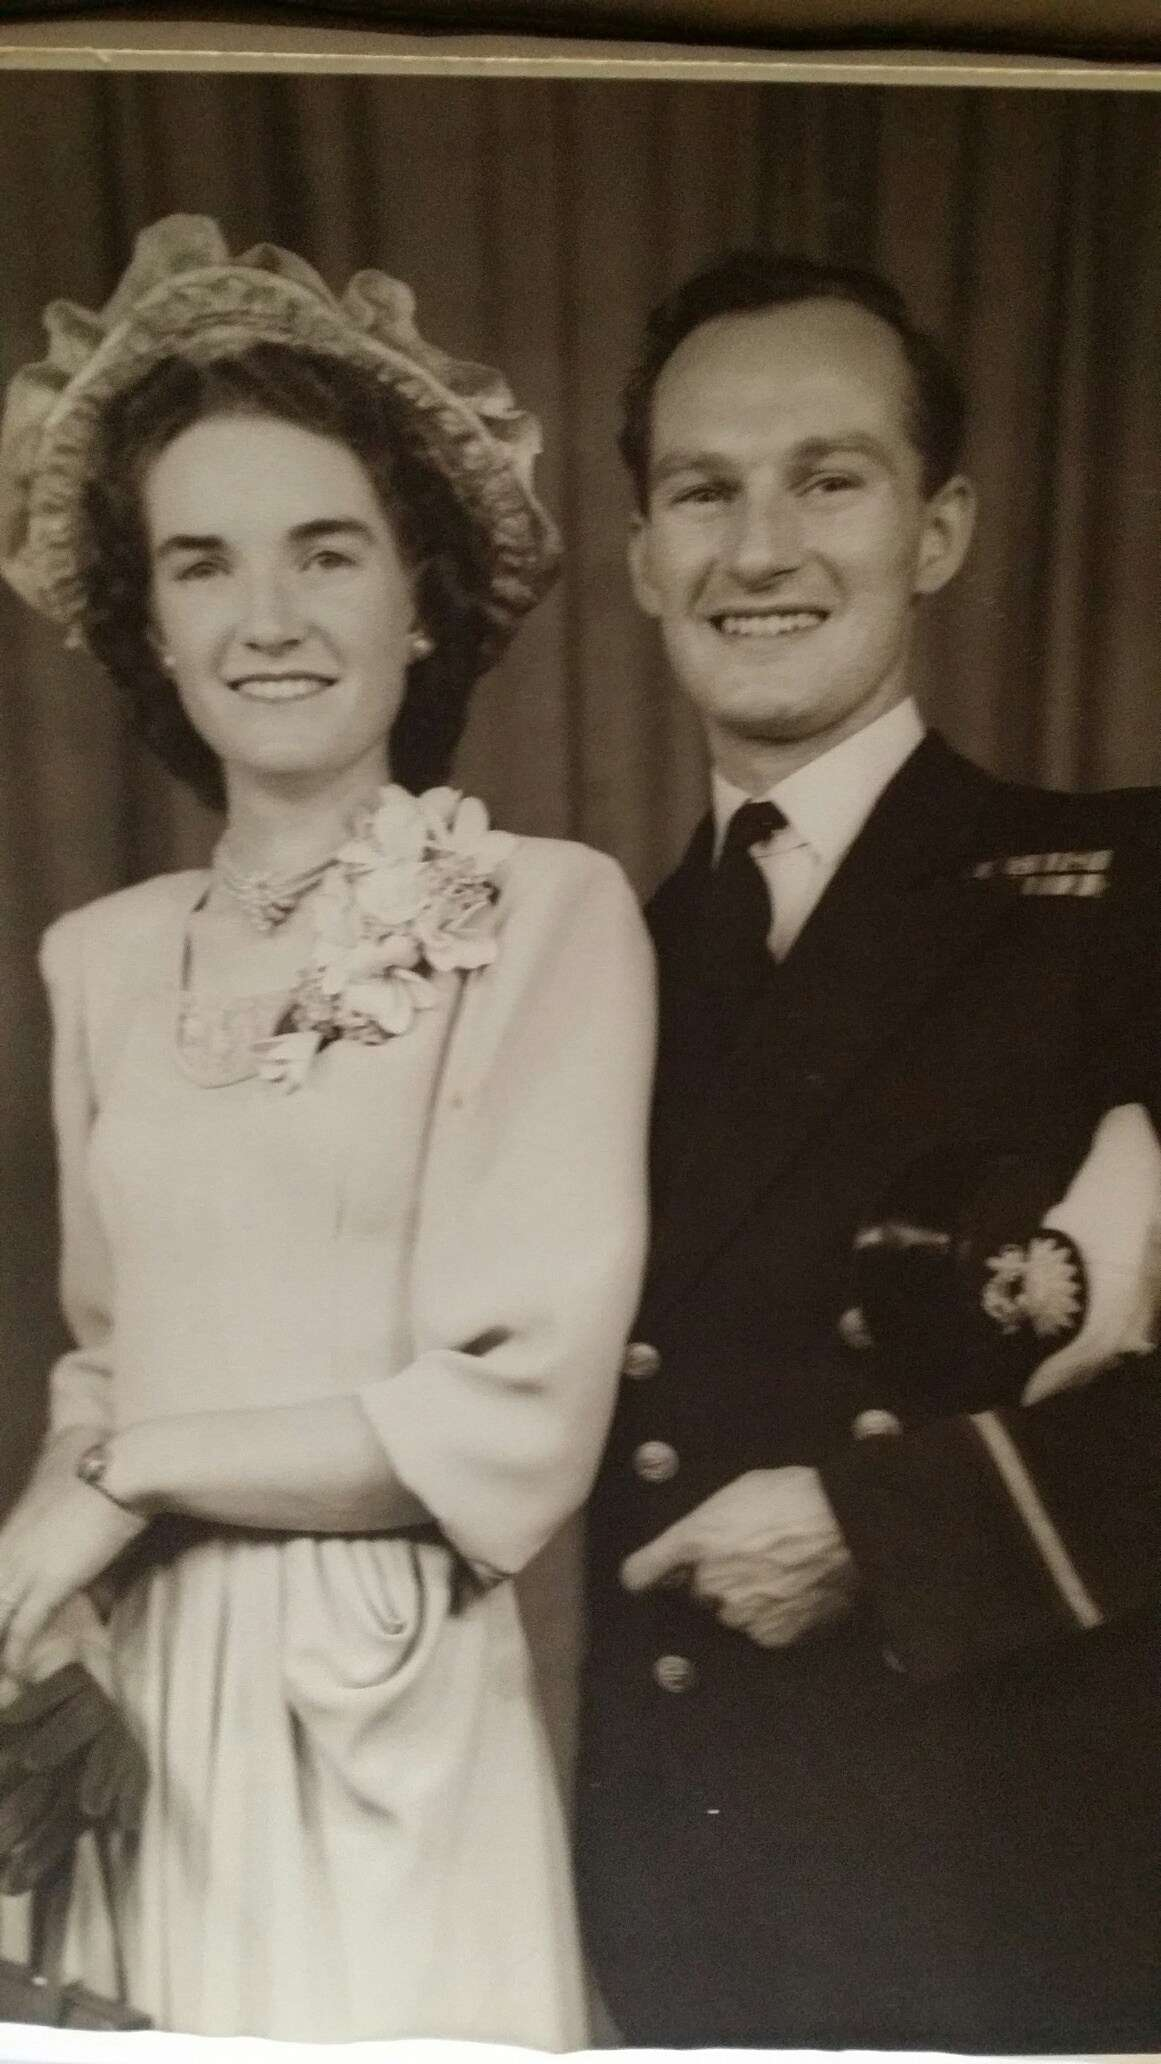 Betty and Duncan Connell on their wedding day. Image supplied by Ian Connell.